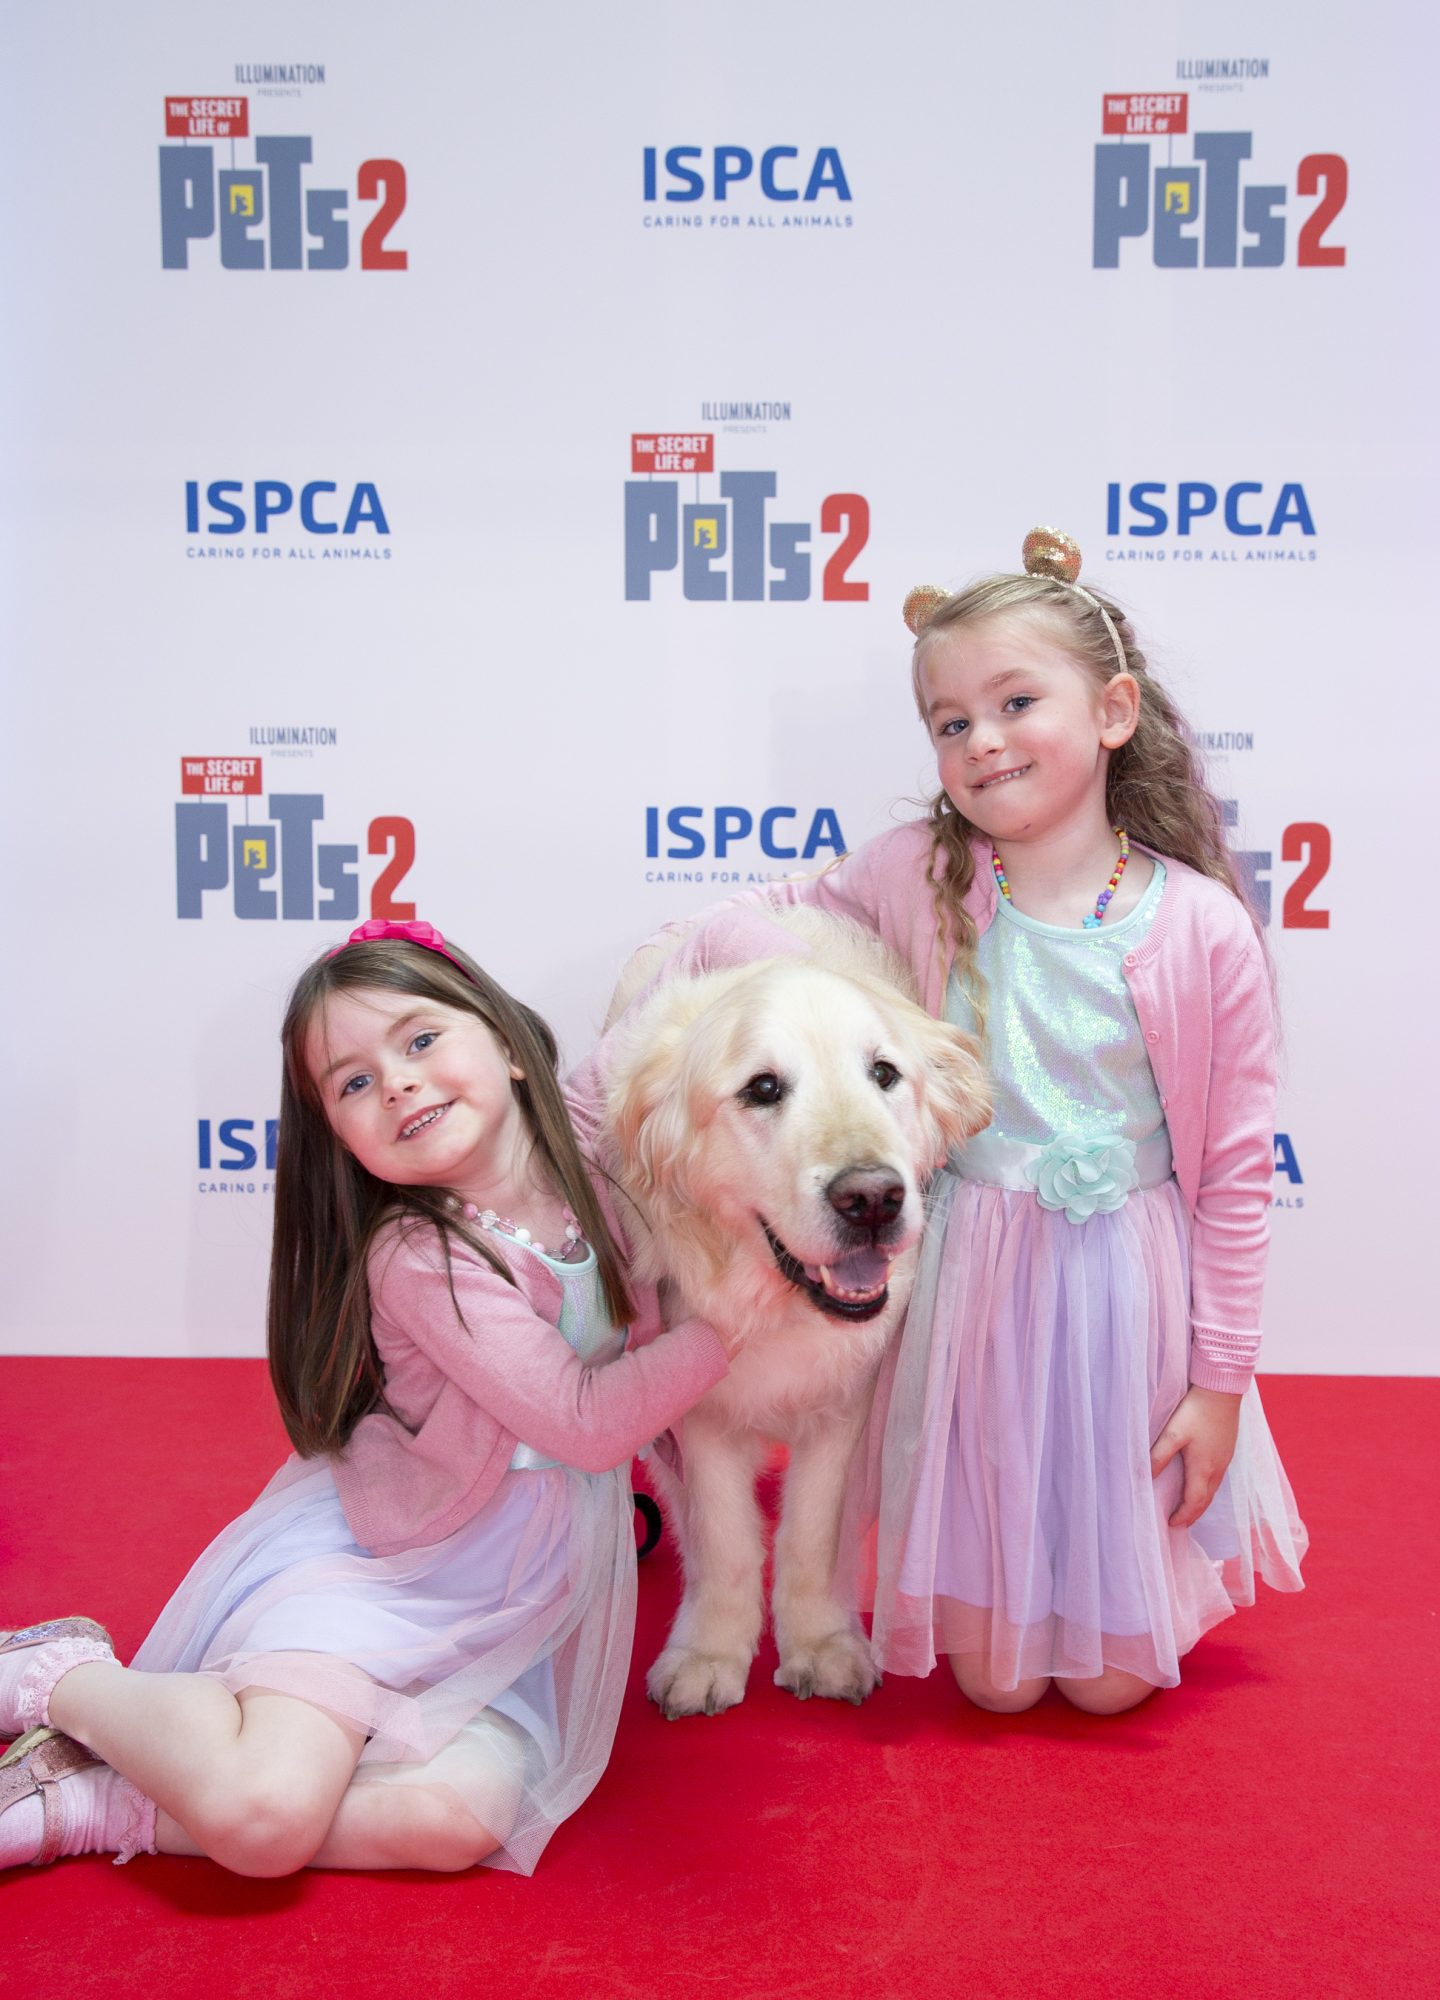 Eve MacHale  4 & Roisin Higgins 4 with dog Fionn pictured at the Irish premiere screening of The Secret Life of Pets 2 at Odeon Point Square, Dublin hosted by Universal Pictures in association with the ISPCA. The Secret Life of Pets 2 is in cinemas from Friday May 24th. Photo: Anthony Woods